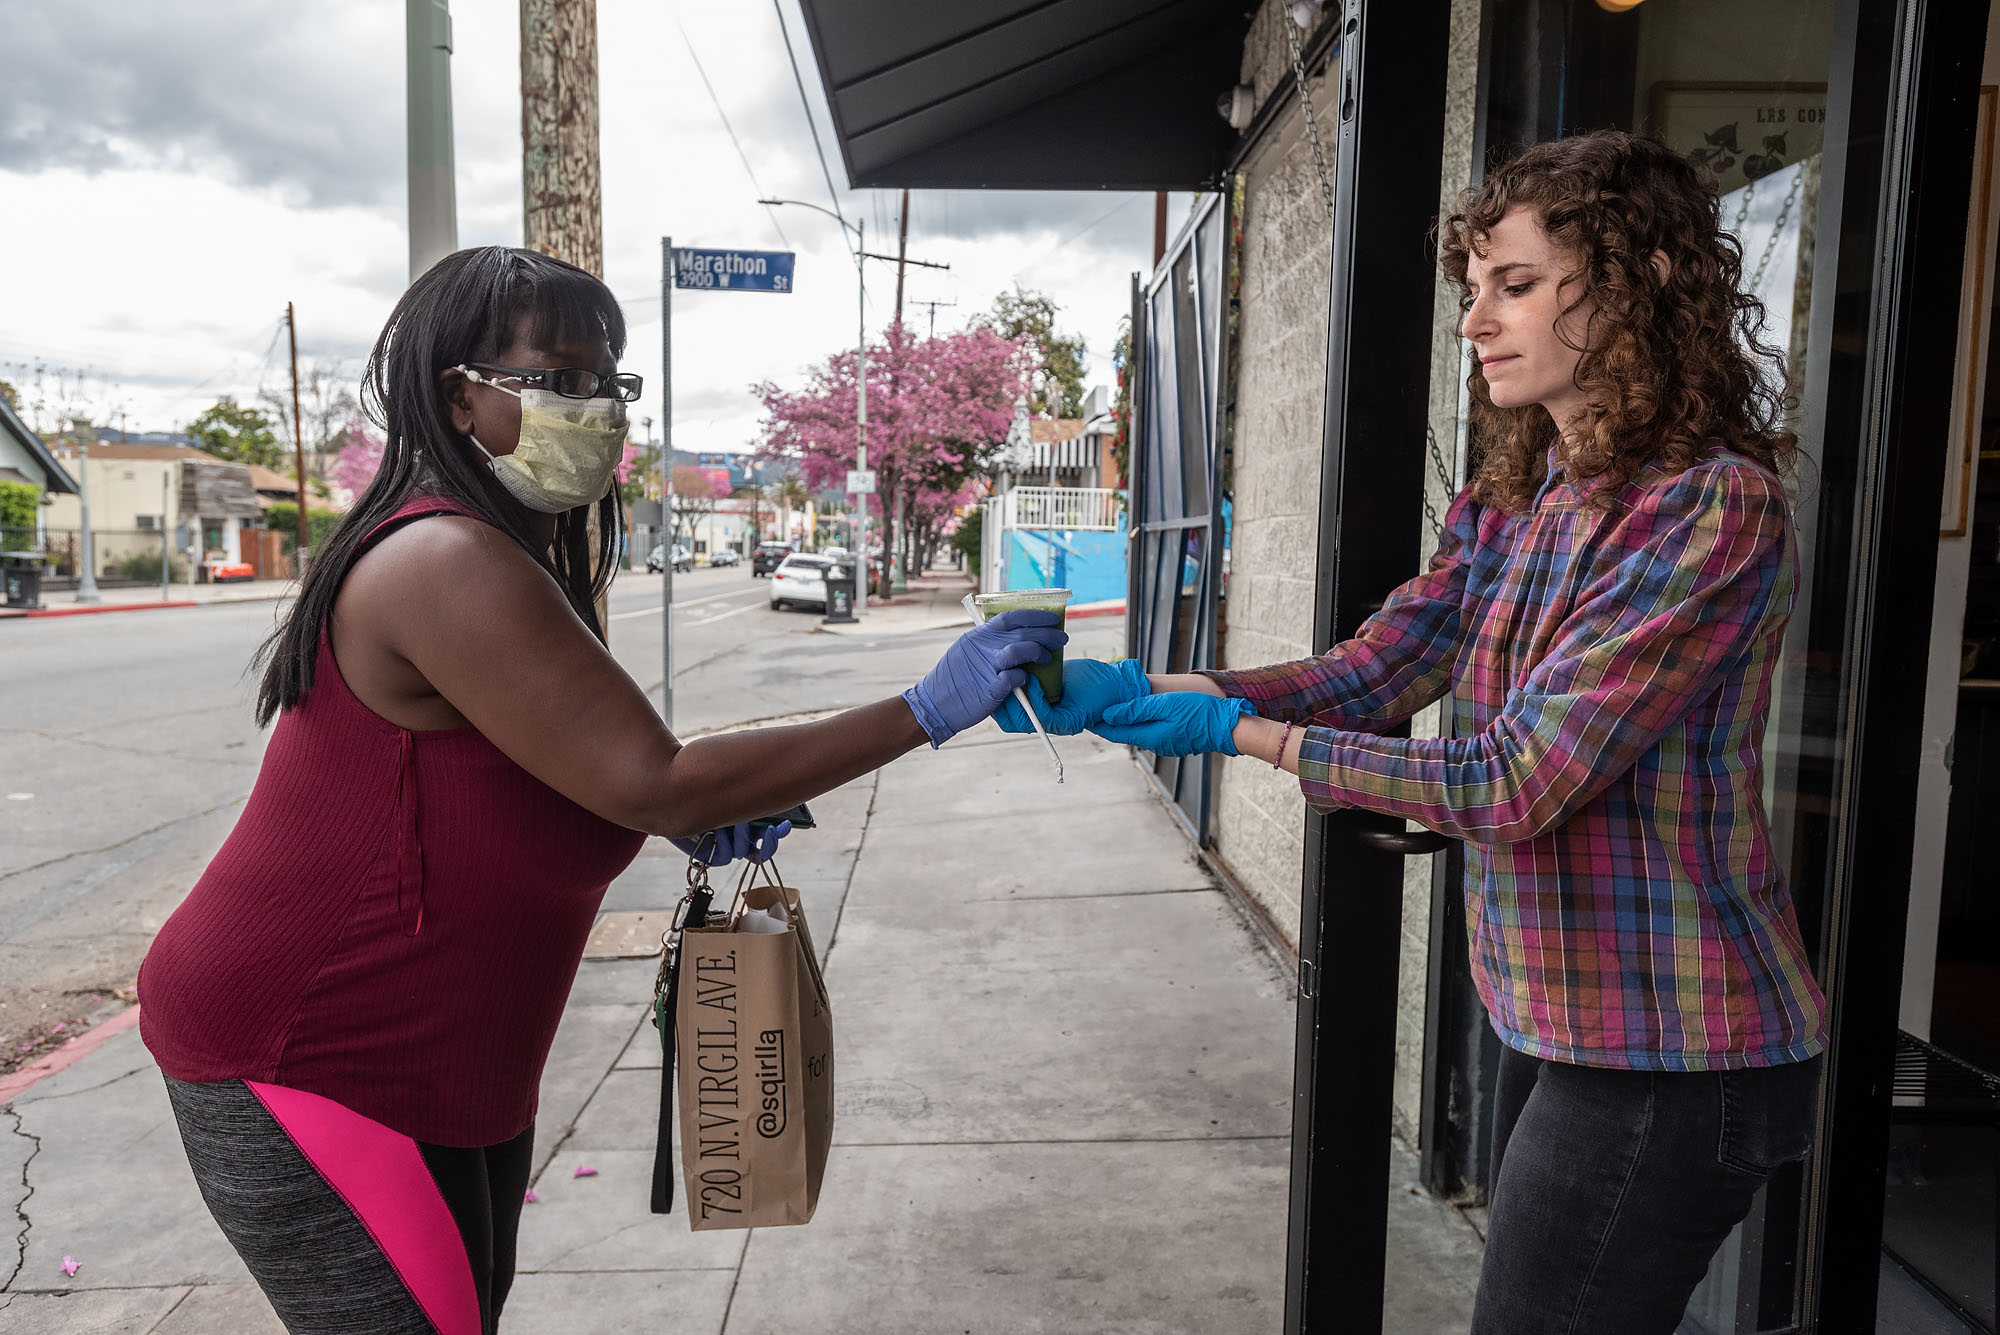 A worker hands food to a delivery driver in a mask and gloves.